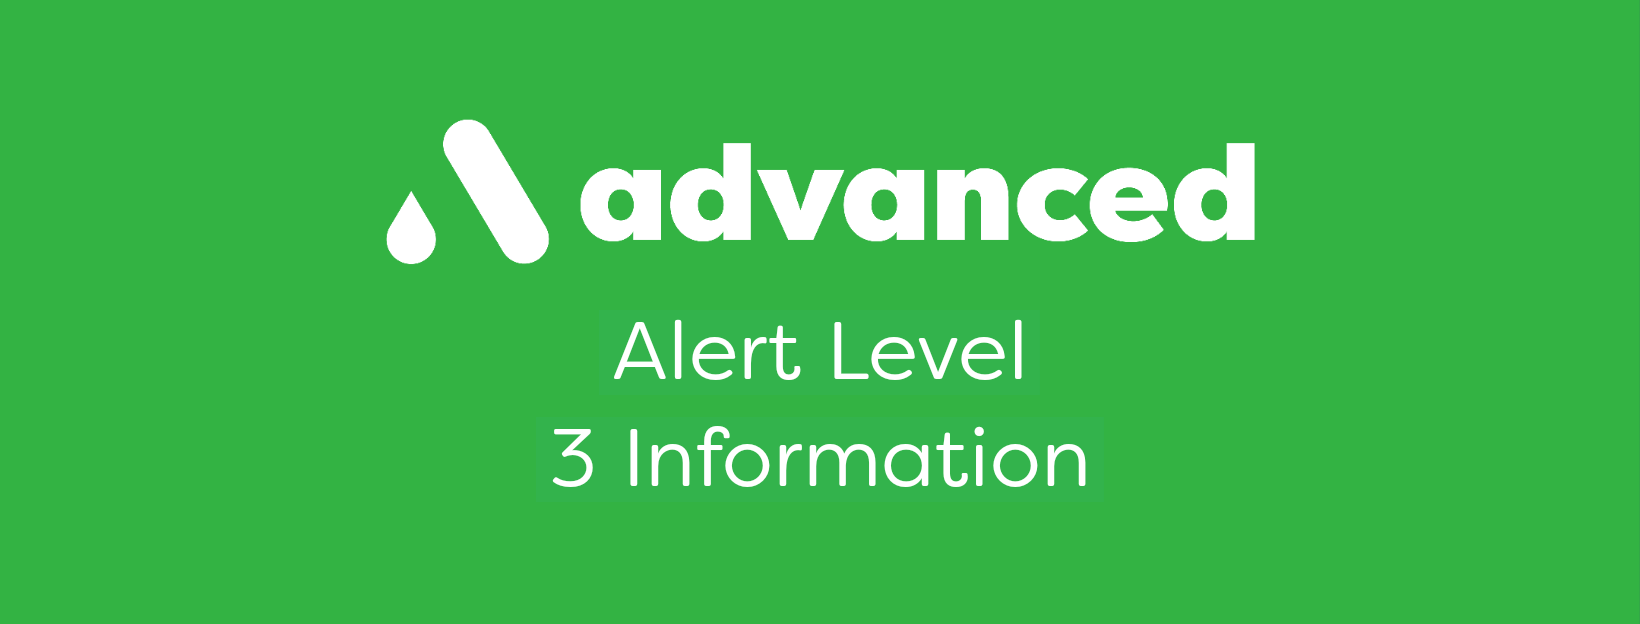 Advanced Plumbing Alert Level 3 information